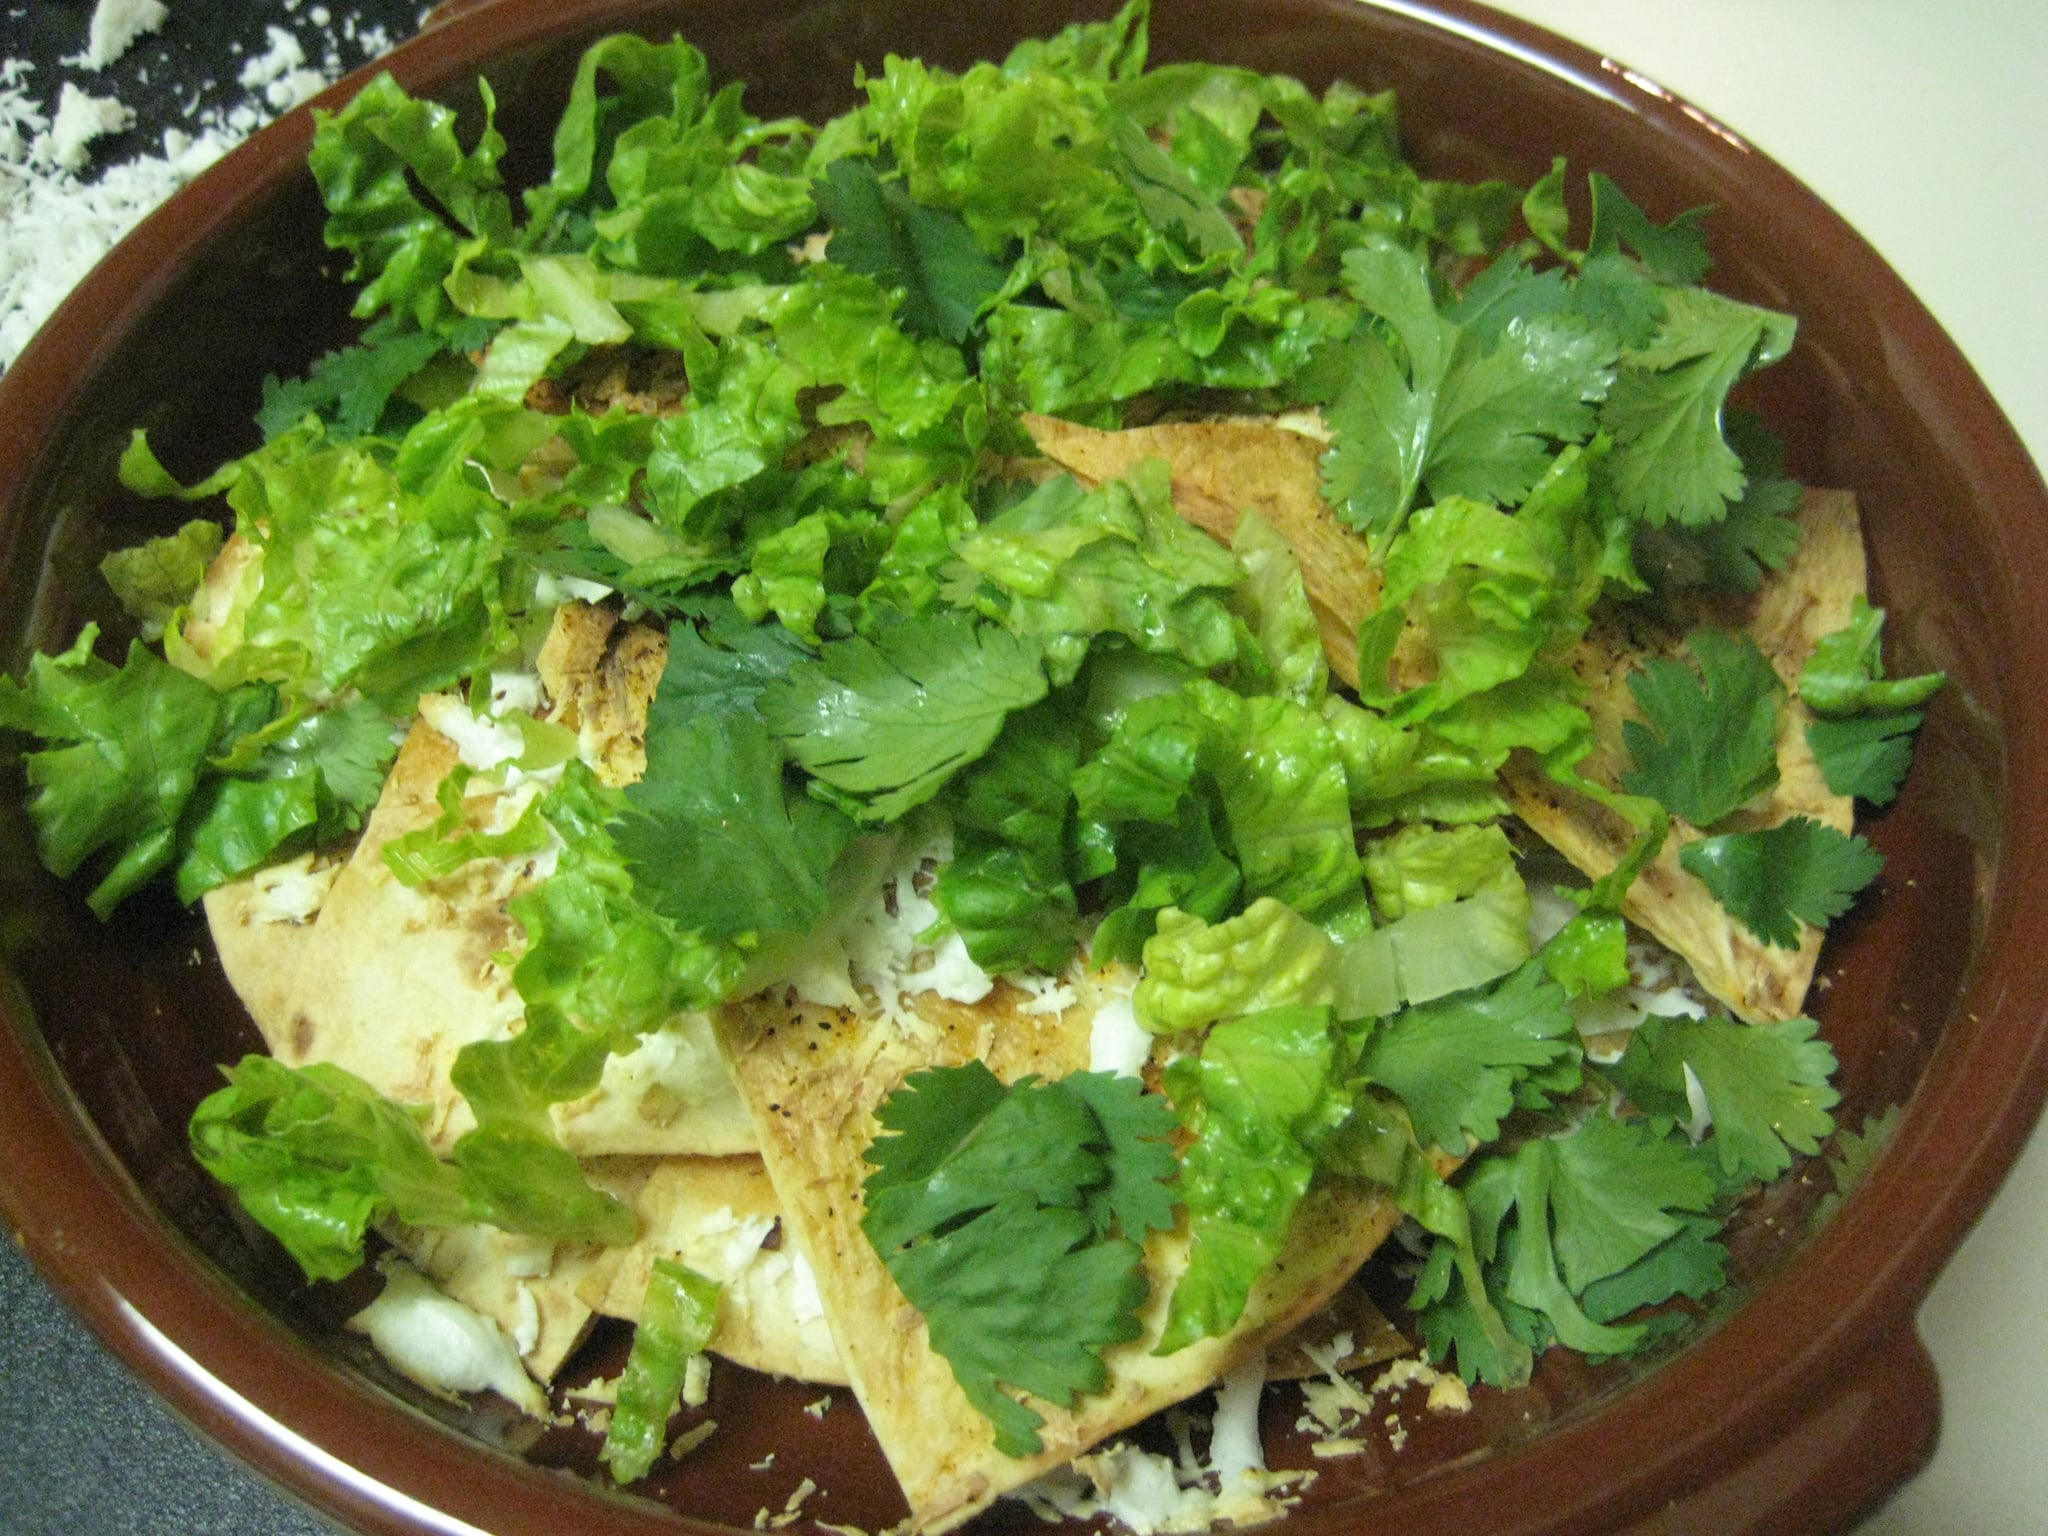 Topping with lettuce and cilantro.